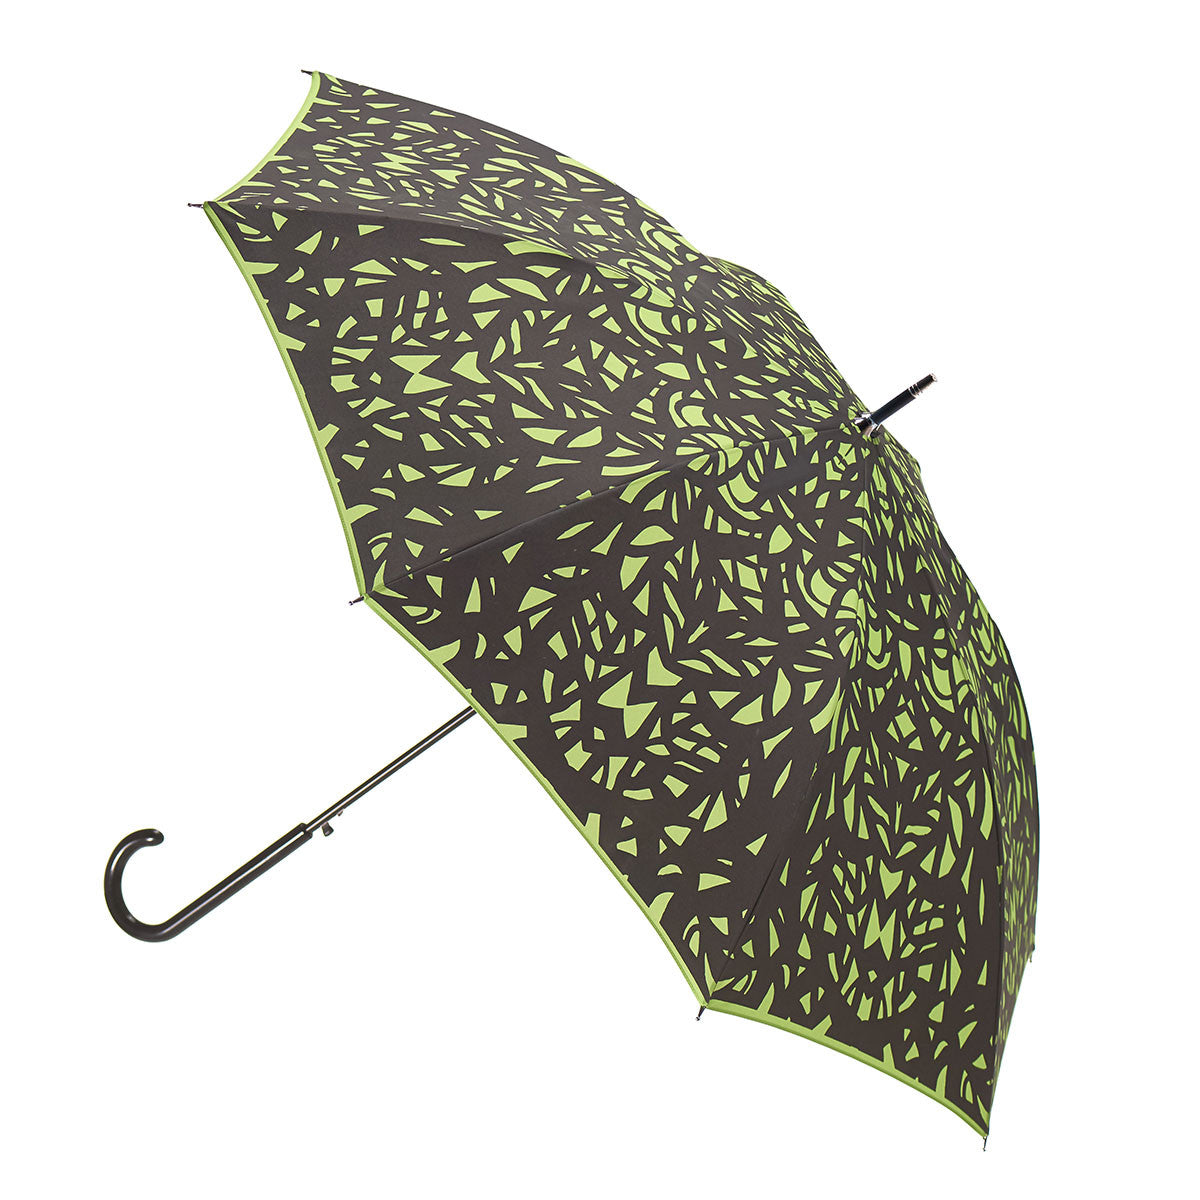 Butterfly Wing Design Black on Greenery Green Umbrella w/ sleeve and shoulder strap